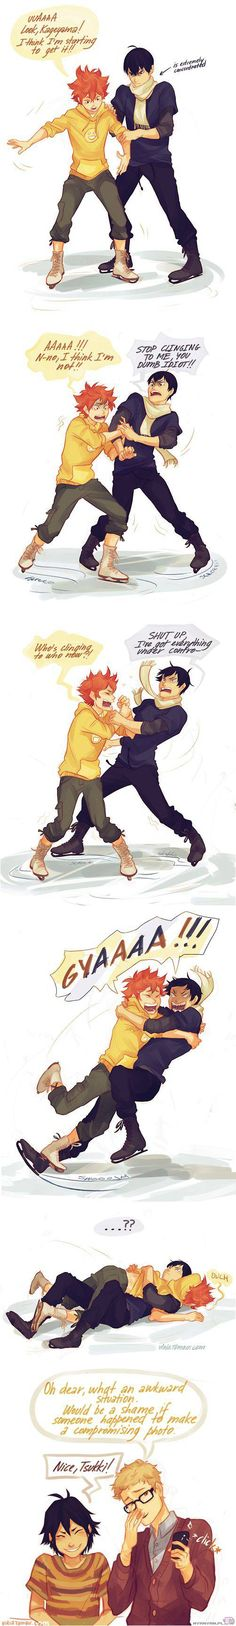 Haikyuu! Kageyama and Shoyo - ice skating :3